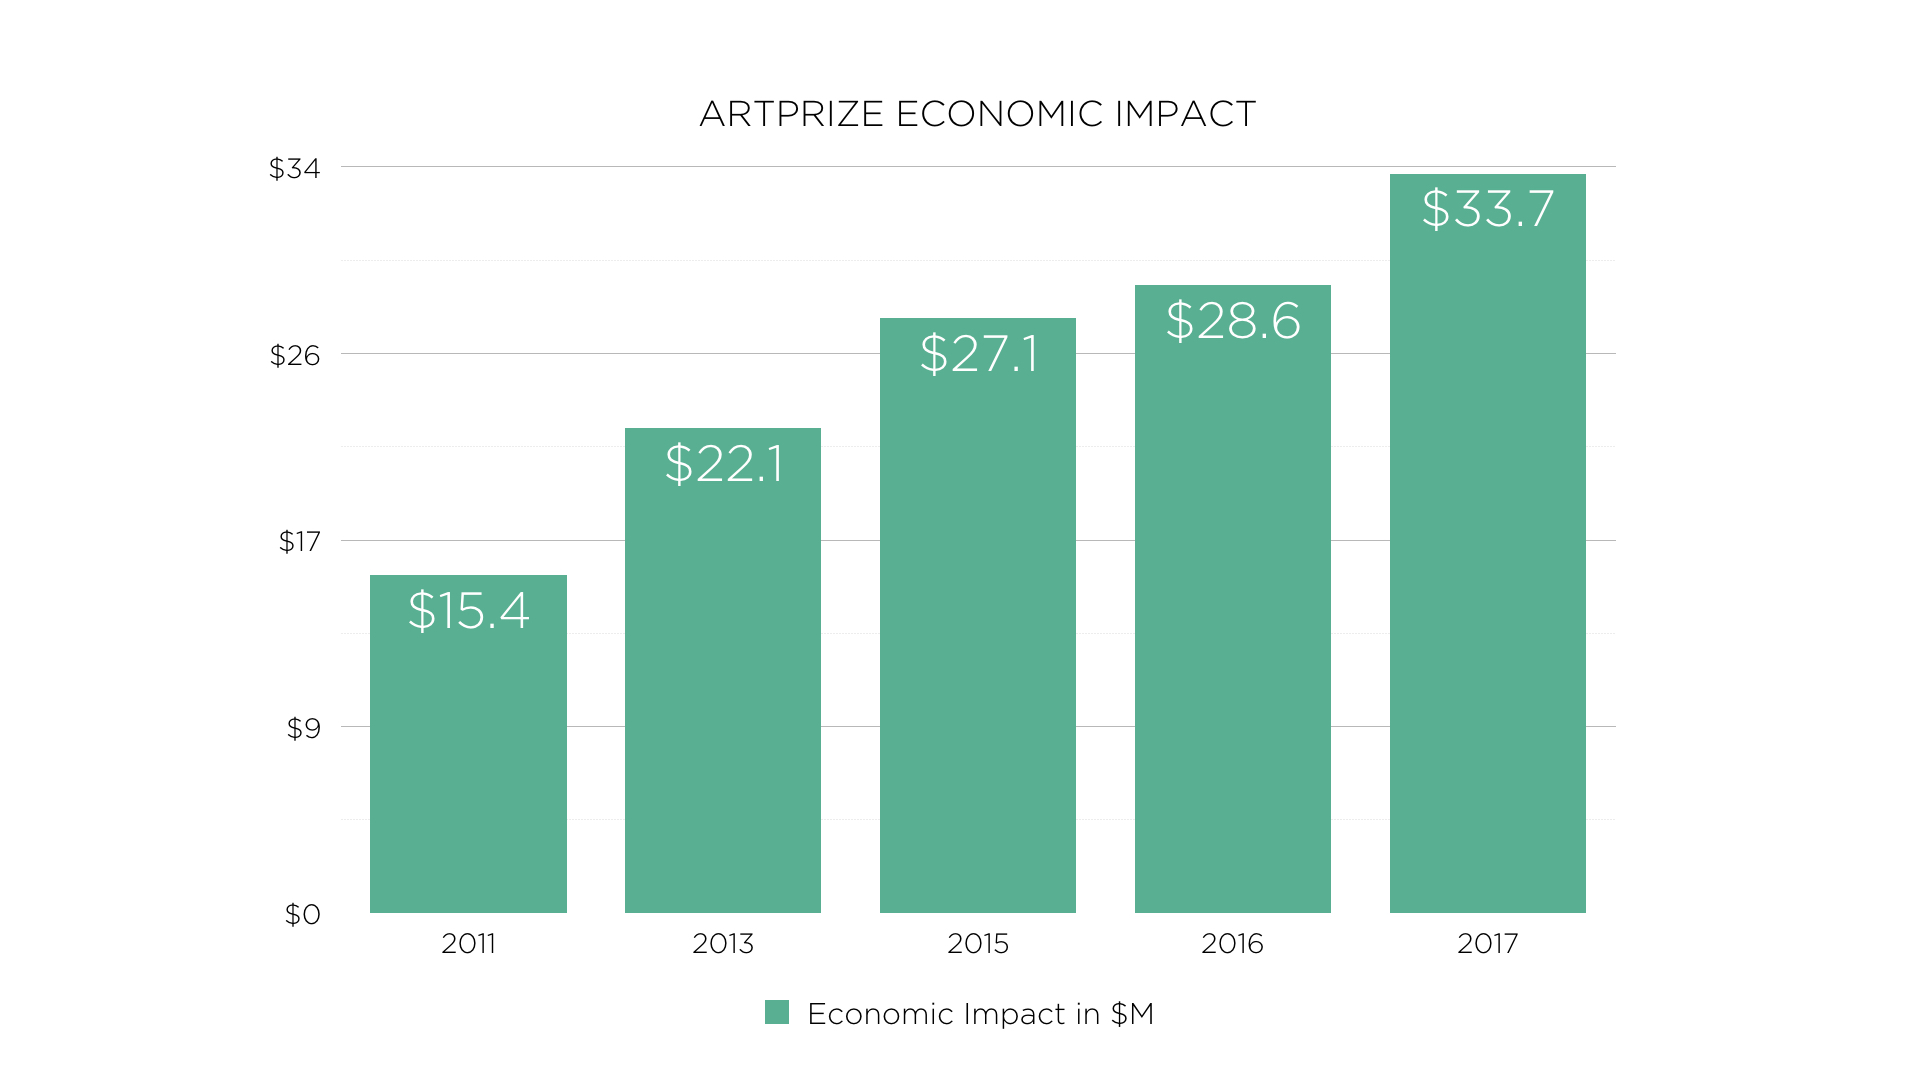 Economic impact data was gathered through a visitor intercept survey using methodologies established and reviewed by Lansing-based economics research and consulting firm, Anderson Economic Group. Economic impact data is determined based on several educated assumptions.